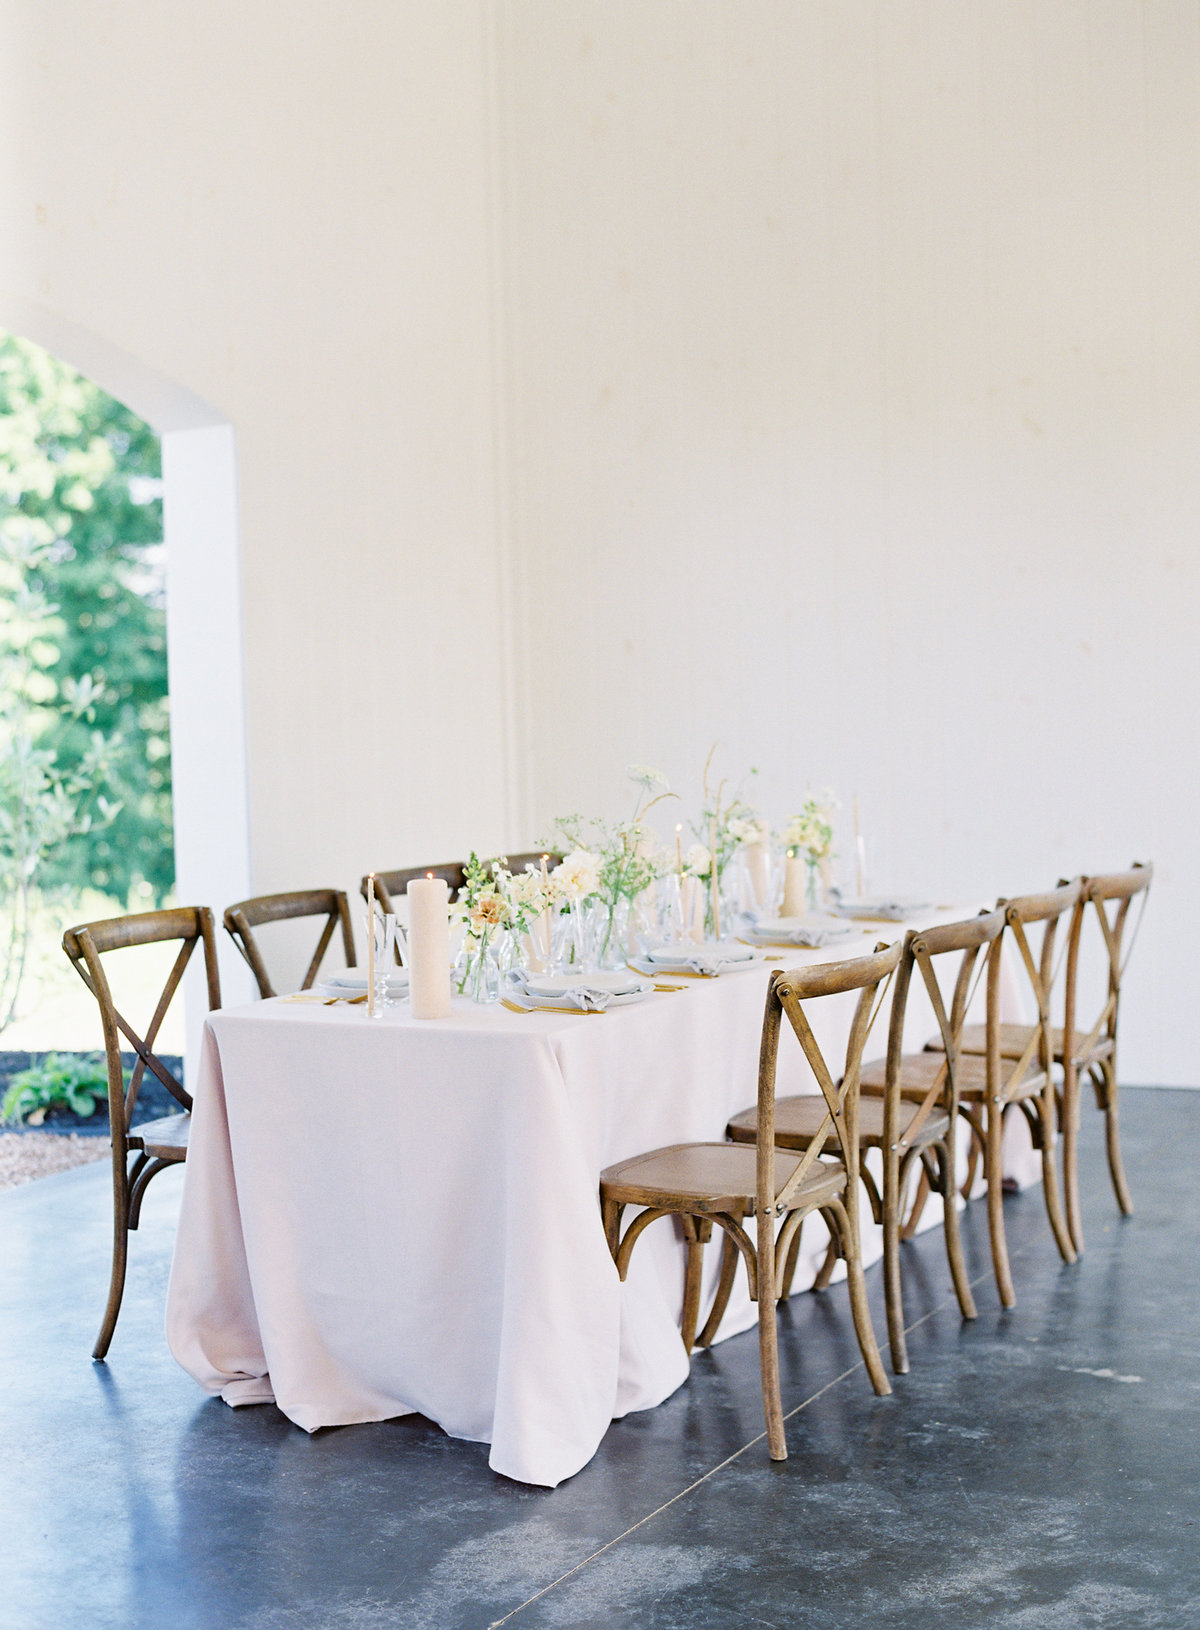 Reception Hall photograph of a table with linens, flowers and candles and wooden chairs Events Held Dear Magnolia Hill Farm | Pittsburgh Wedding Photographer | Anna Laero